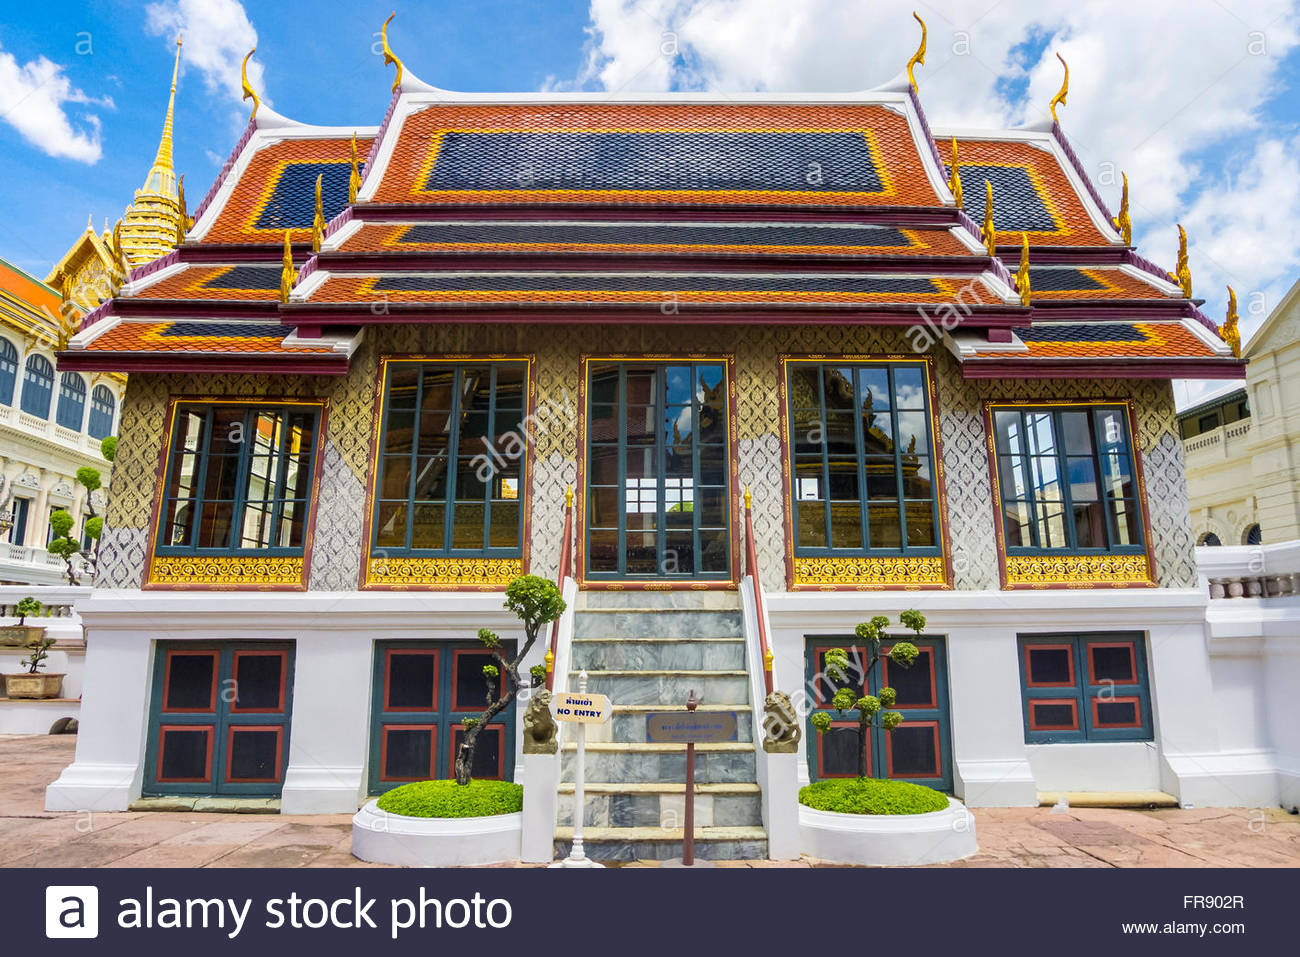 Phra Thinang Dusidaphirom hall presso il Grand Palace complesso, Bangkok, Thailandia Immagini Stock